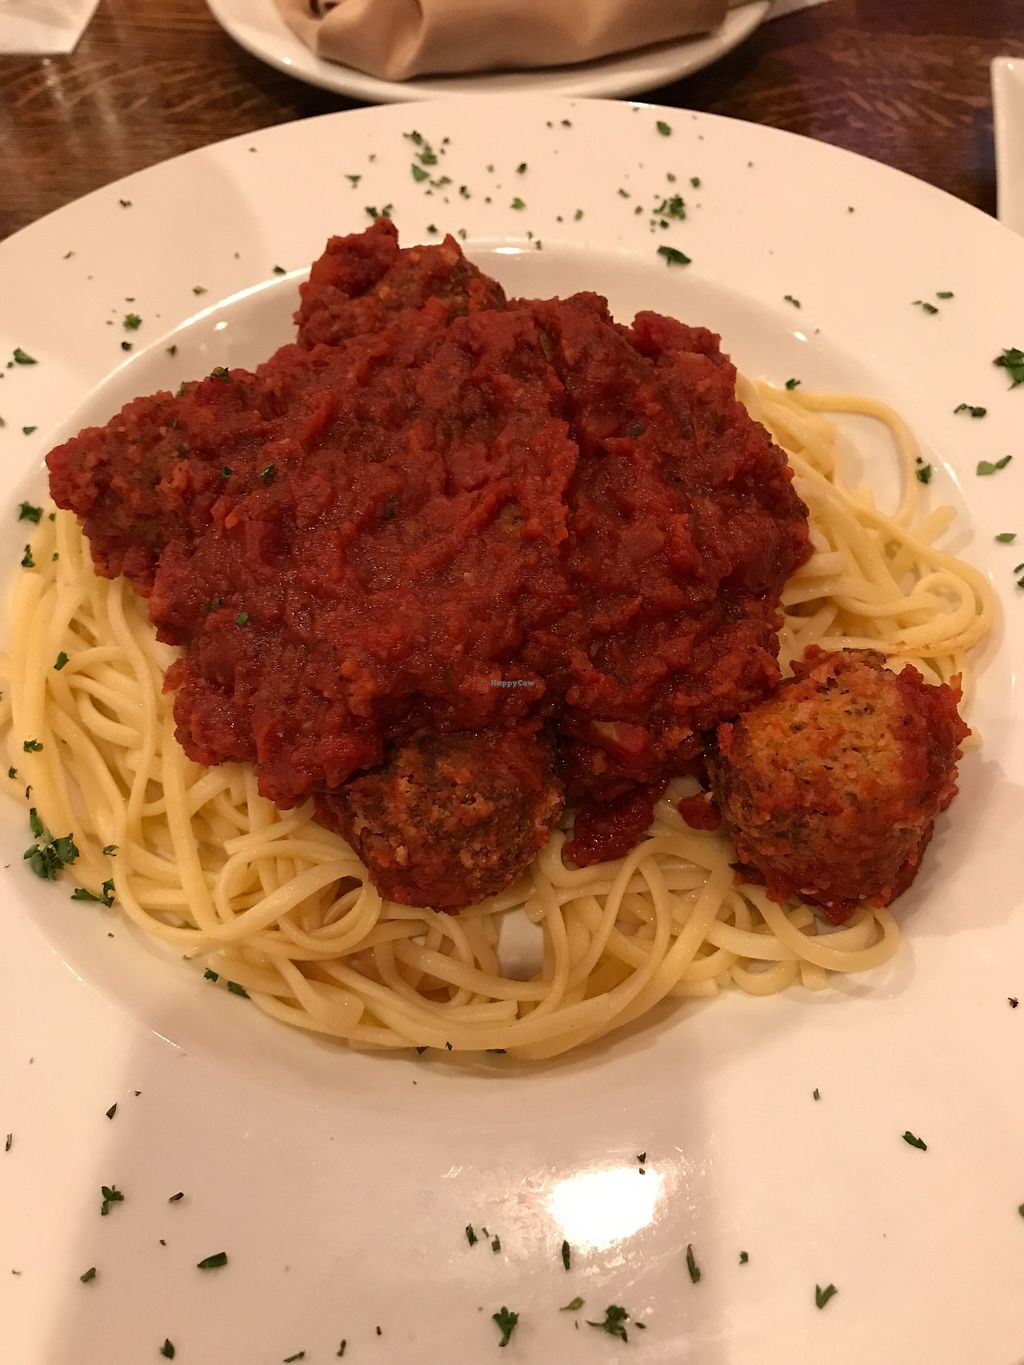 """Photo of Montero's Restaurant & Bar  by <a href=""""/members/profile/angelcrowe"""">angelcrowe</a> <br/>Linguini and meatball dish <br/> July 30, 2017  - <a href='/contact/abuse/image/89509/286869'>Report</a>"""